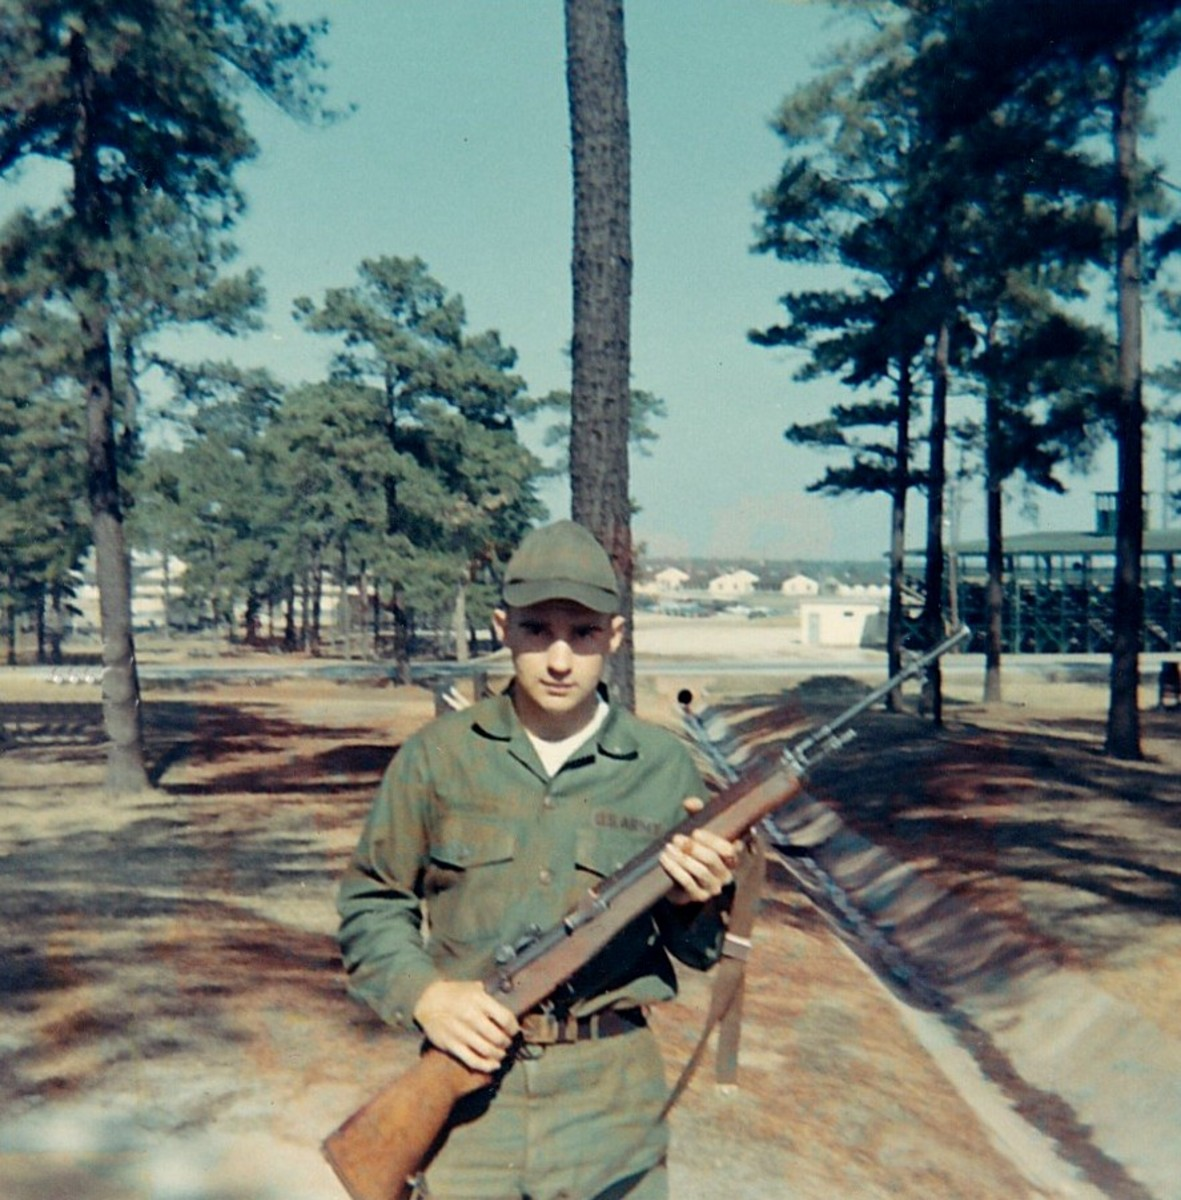 A Story of Thanksgiving, My Brother, and Vietnam